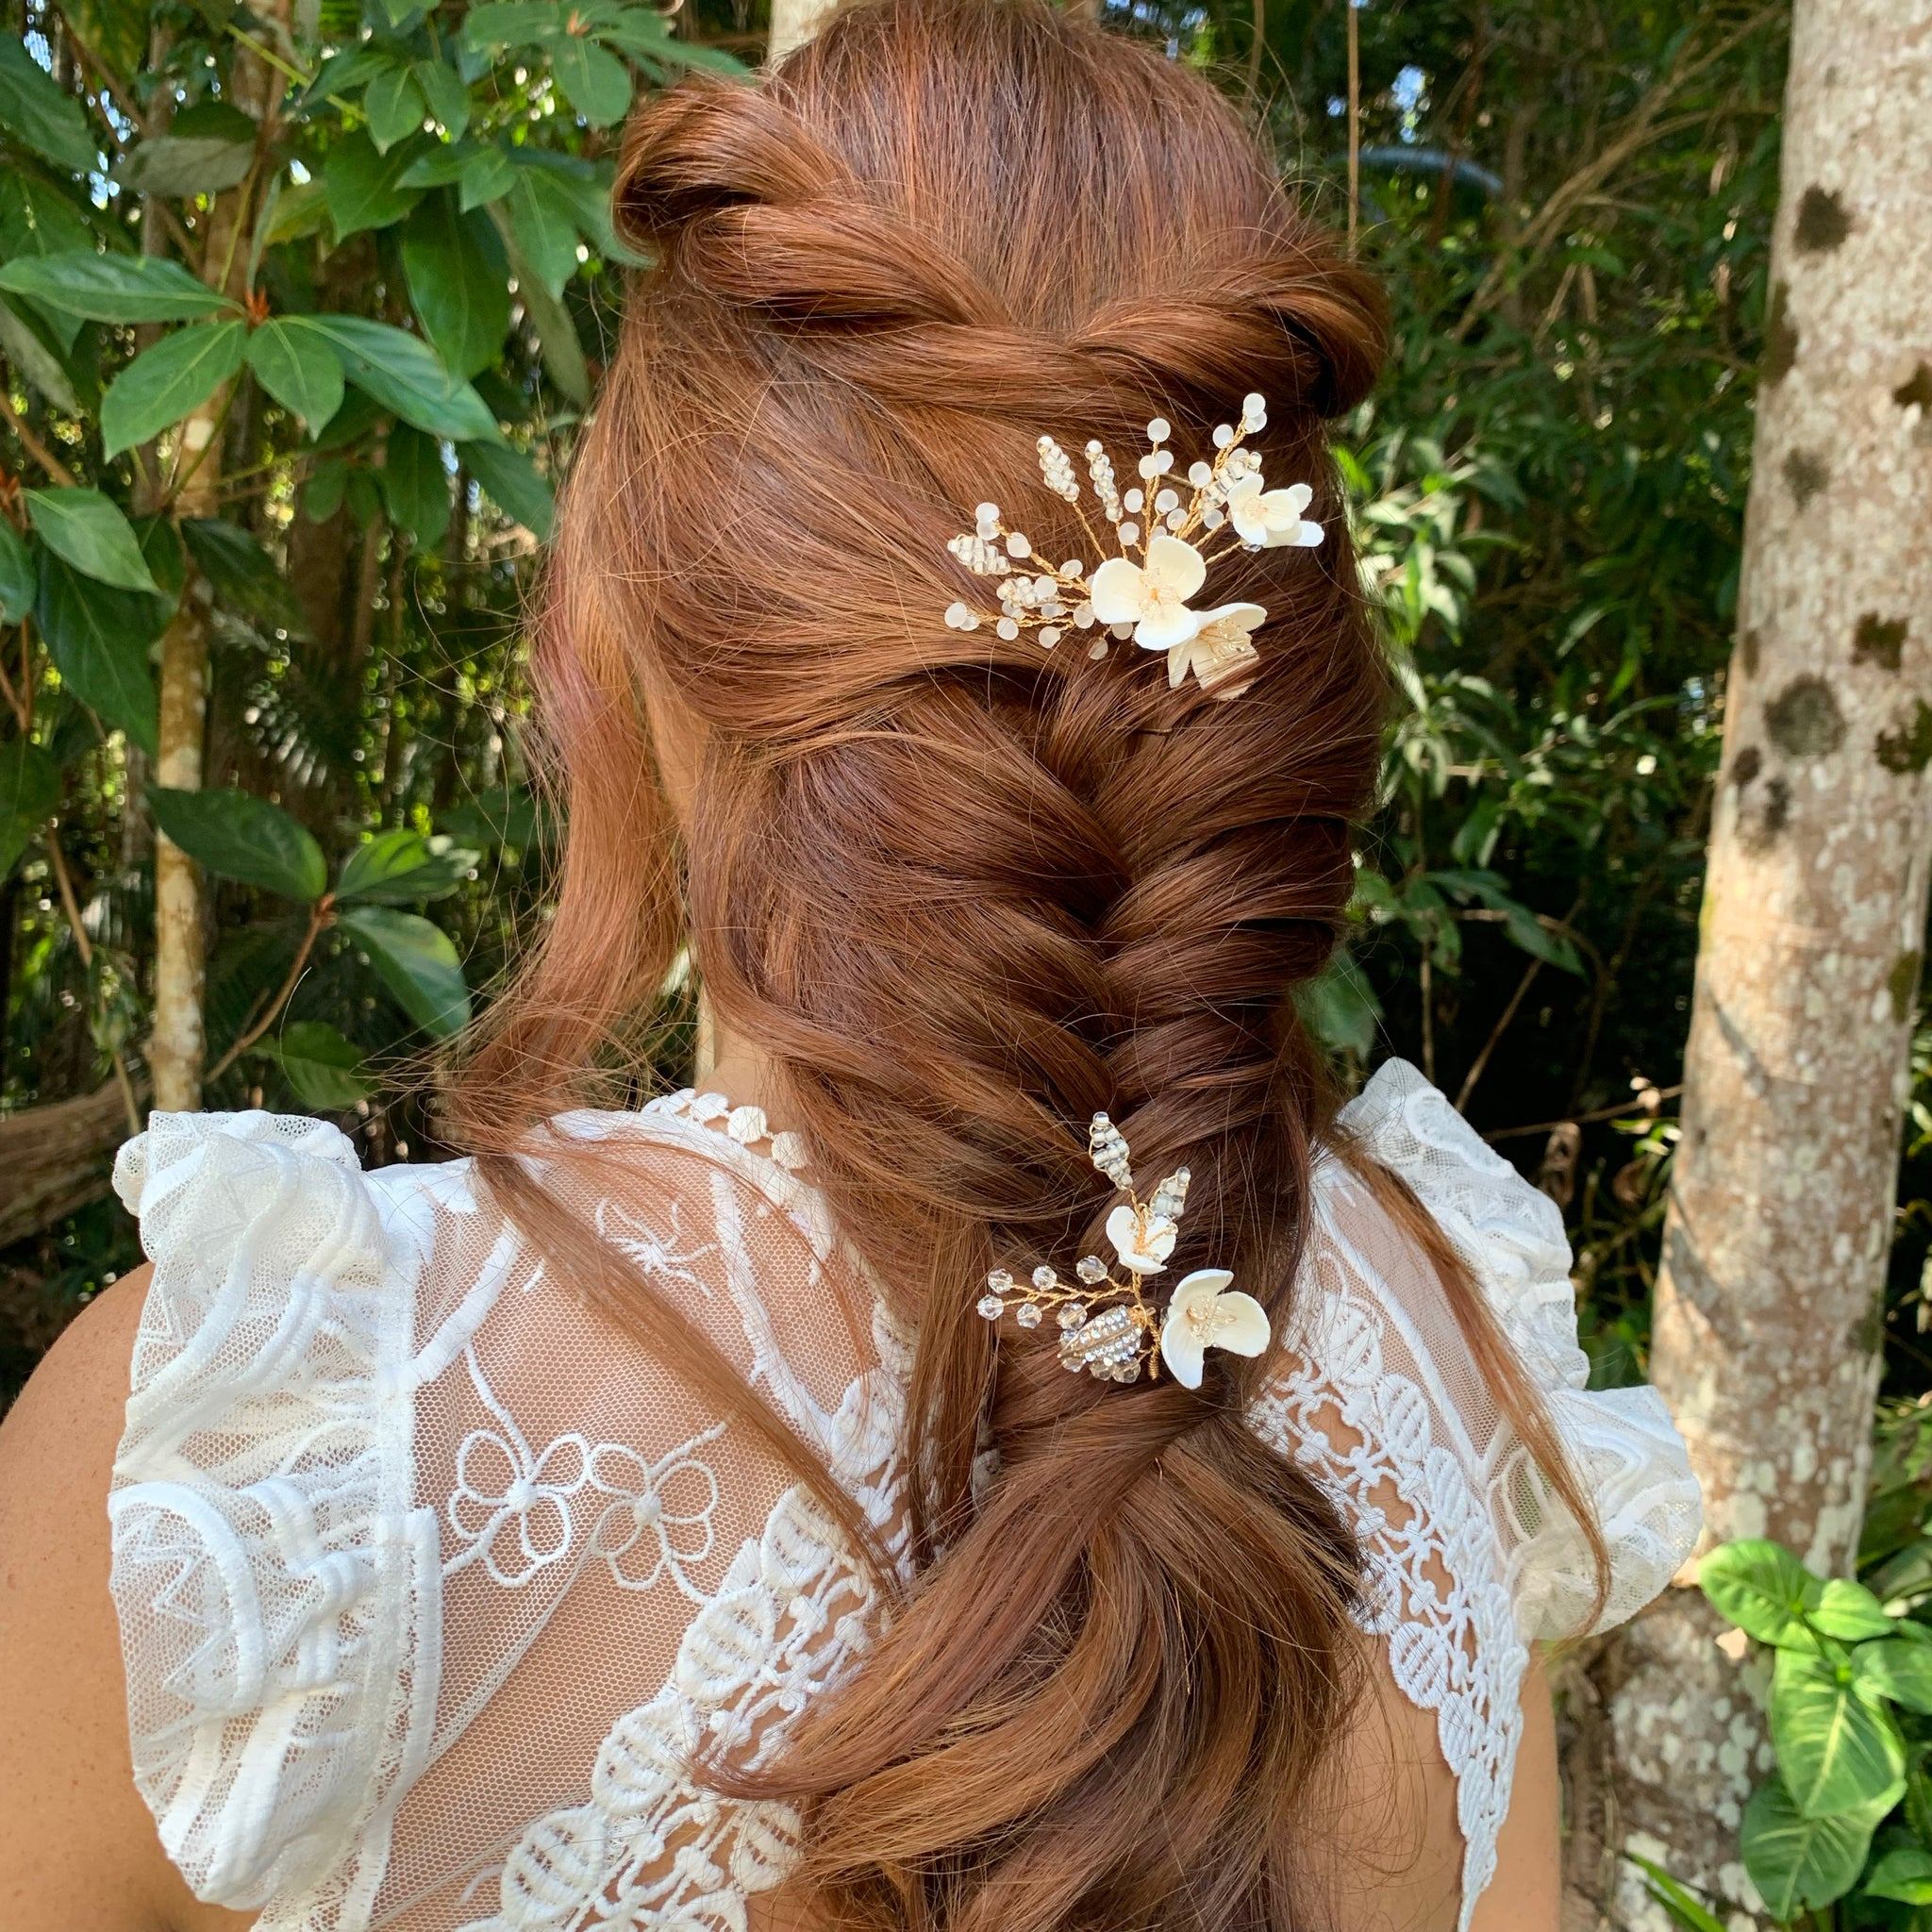 fishtail braid bridal hairstyle with gold hair accessoires with white flowers